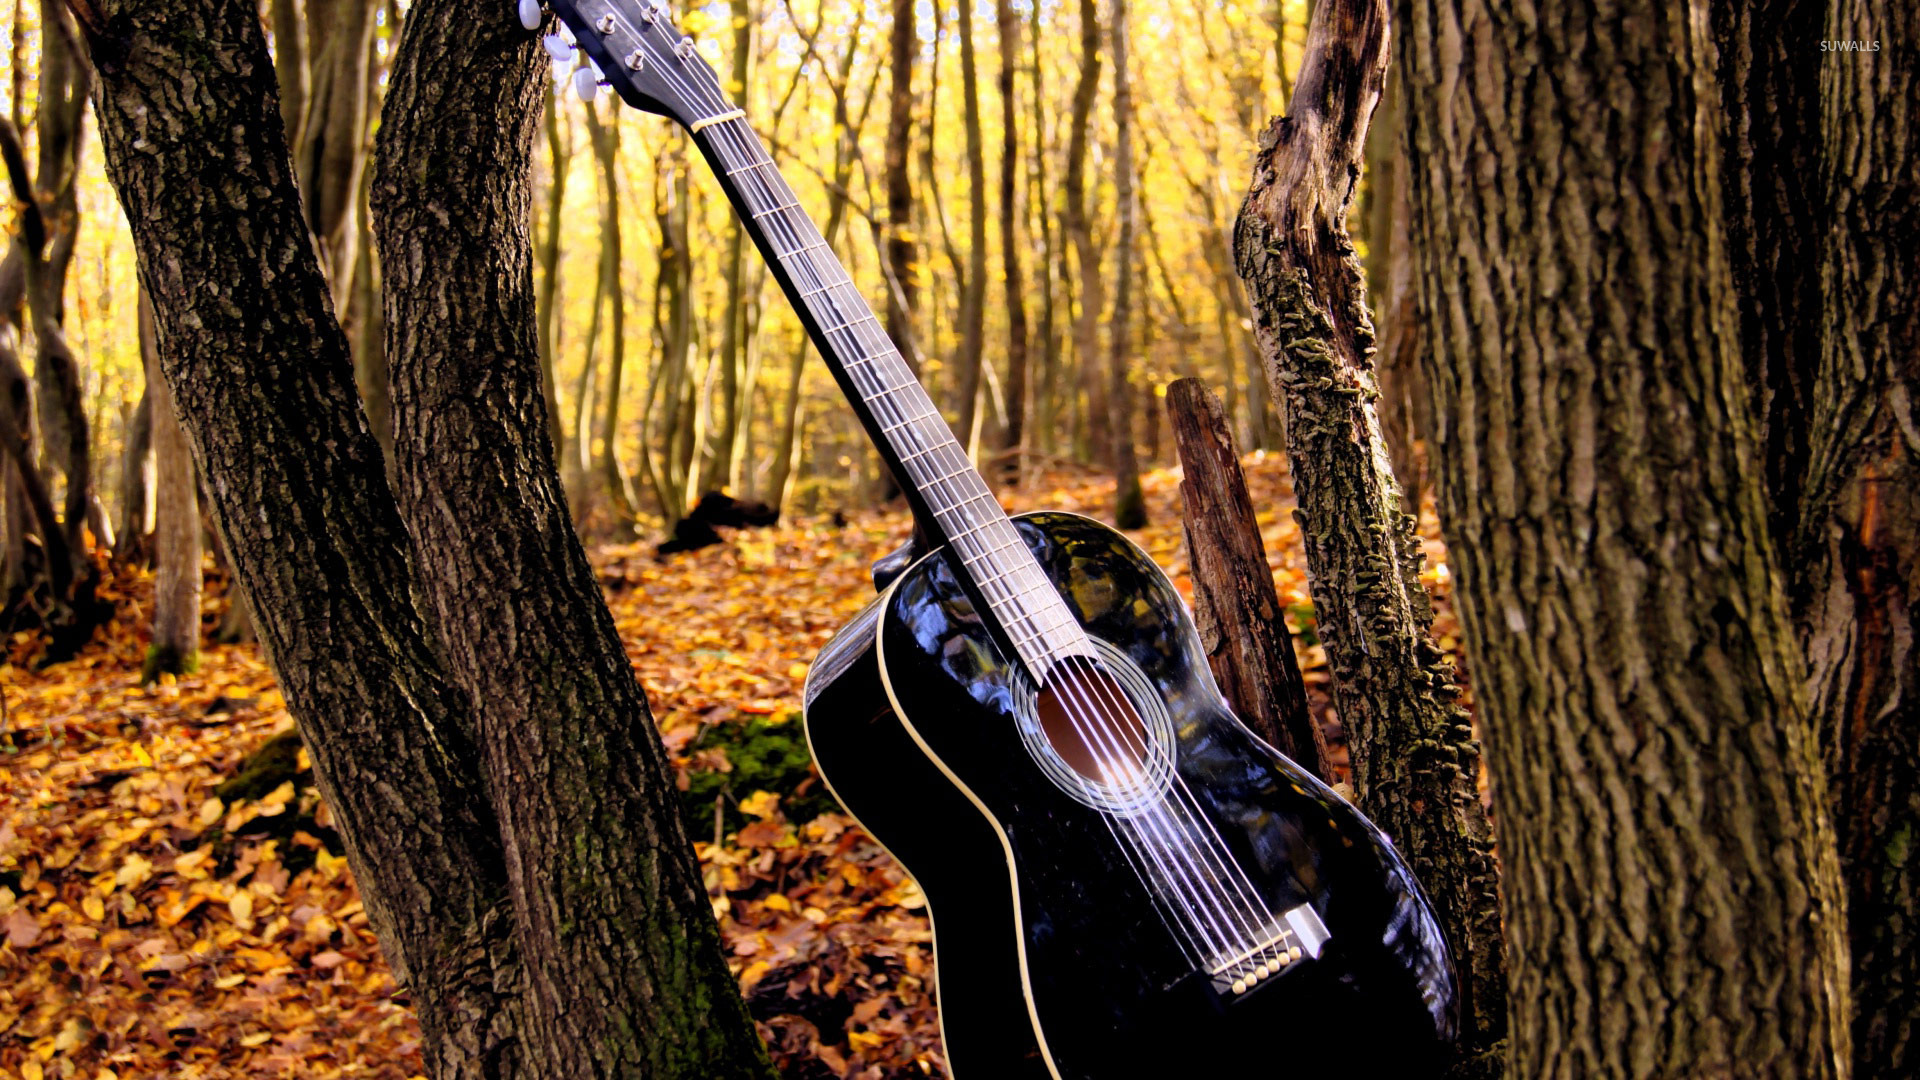 Popular Wallpaper Music Tree - guitar-in-the-forest-19122-1920x1080  Photograph_593593.jpg